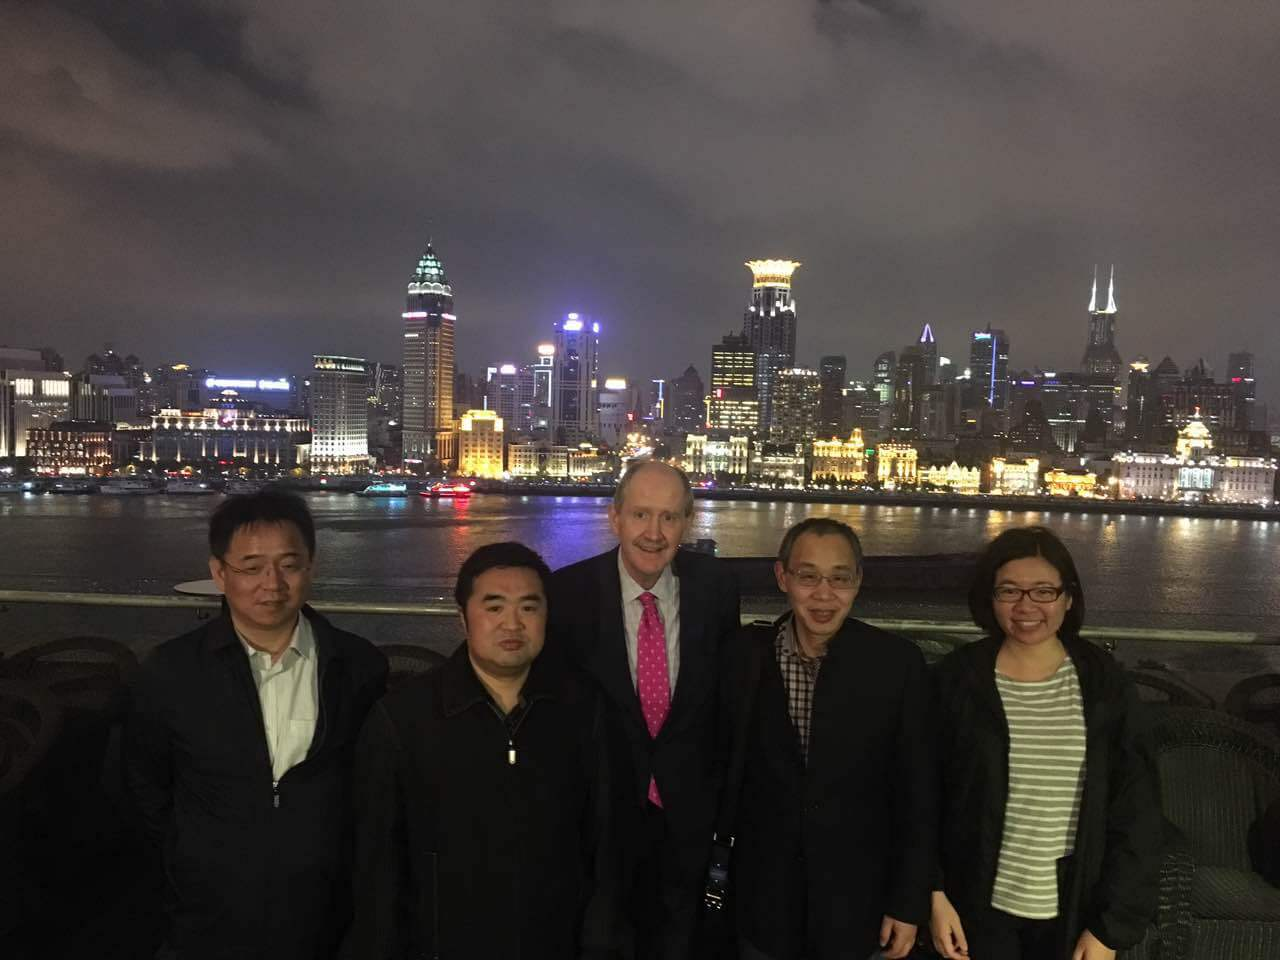 Prof Shi of ZJU (Zhejiang) with colleagues, Robert Owen, and Junying Chen. Shanghai, April 2016